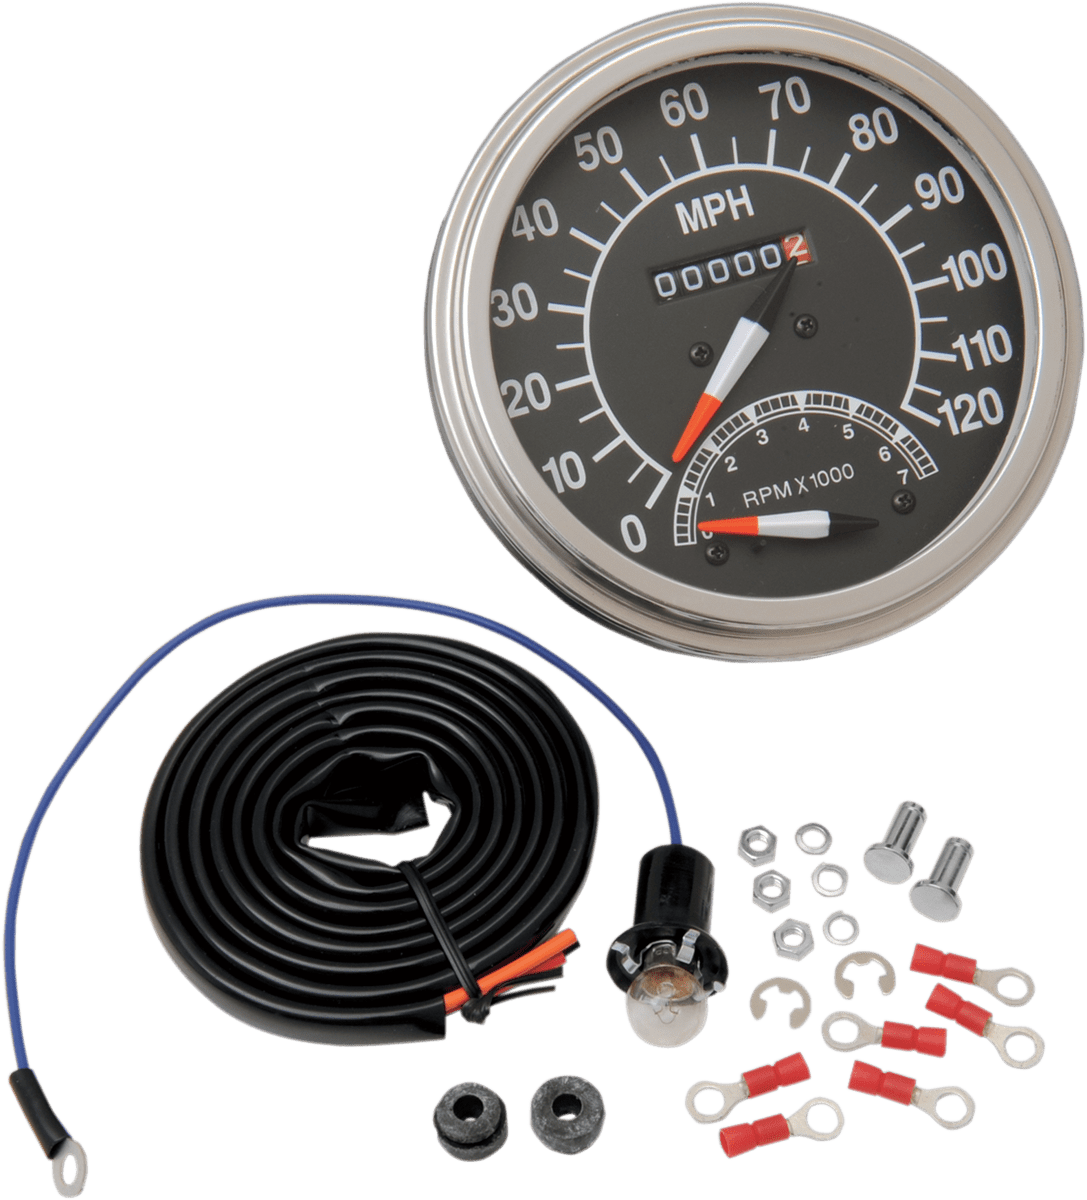 medium resolution of mopar tachometer wiring diagram explained wiring diagrams chevy truck tachometer mopar wiring a tachometer